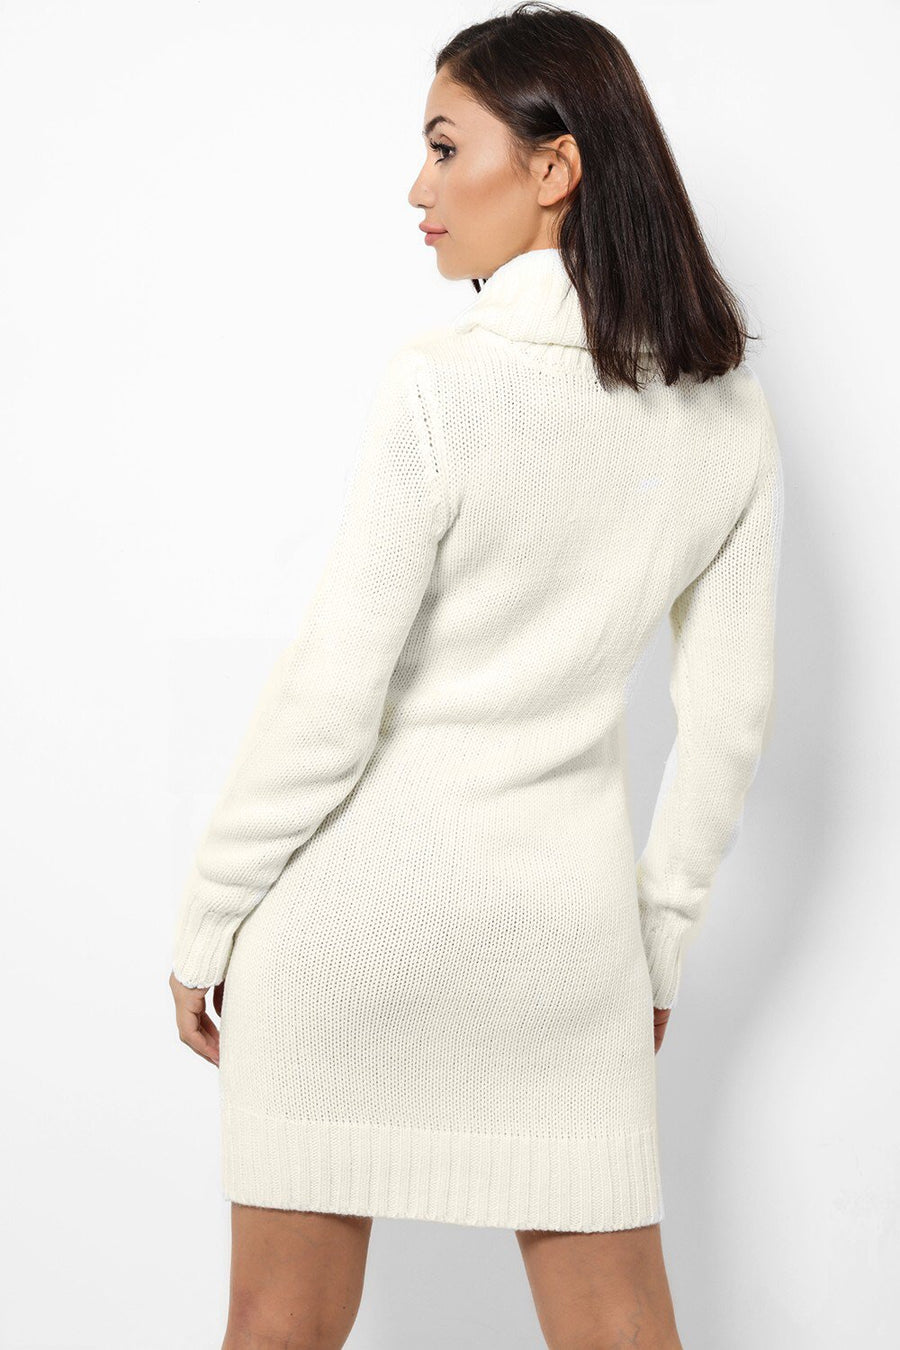 ' Amber ' cream roll neck jumper dress - Bikini Genie